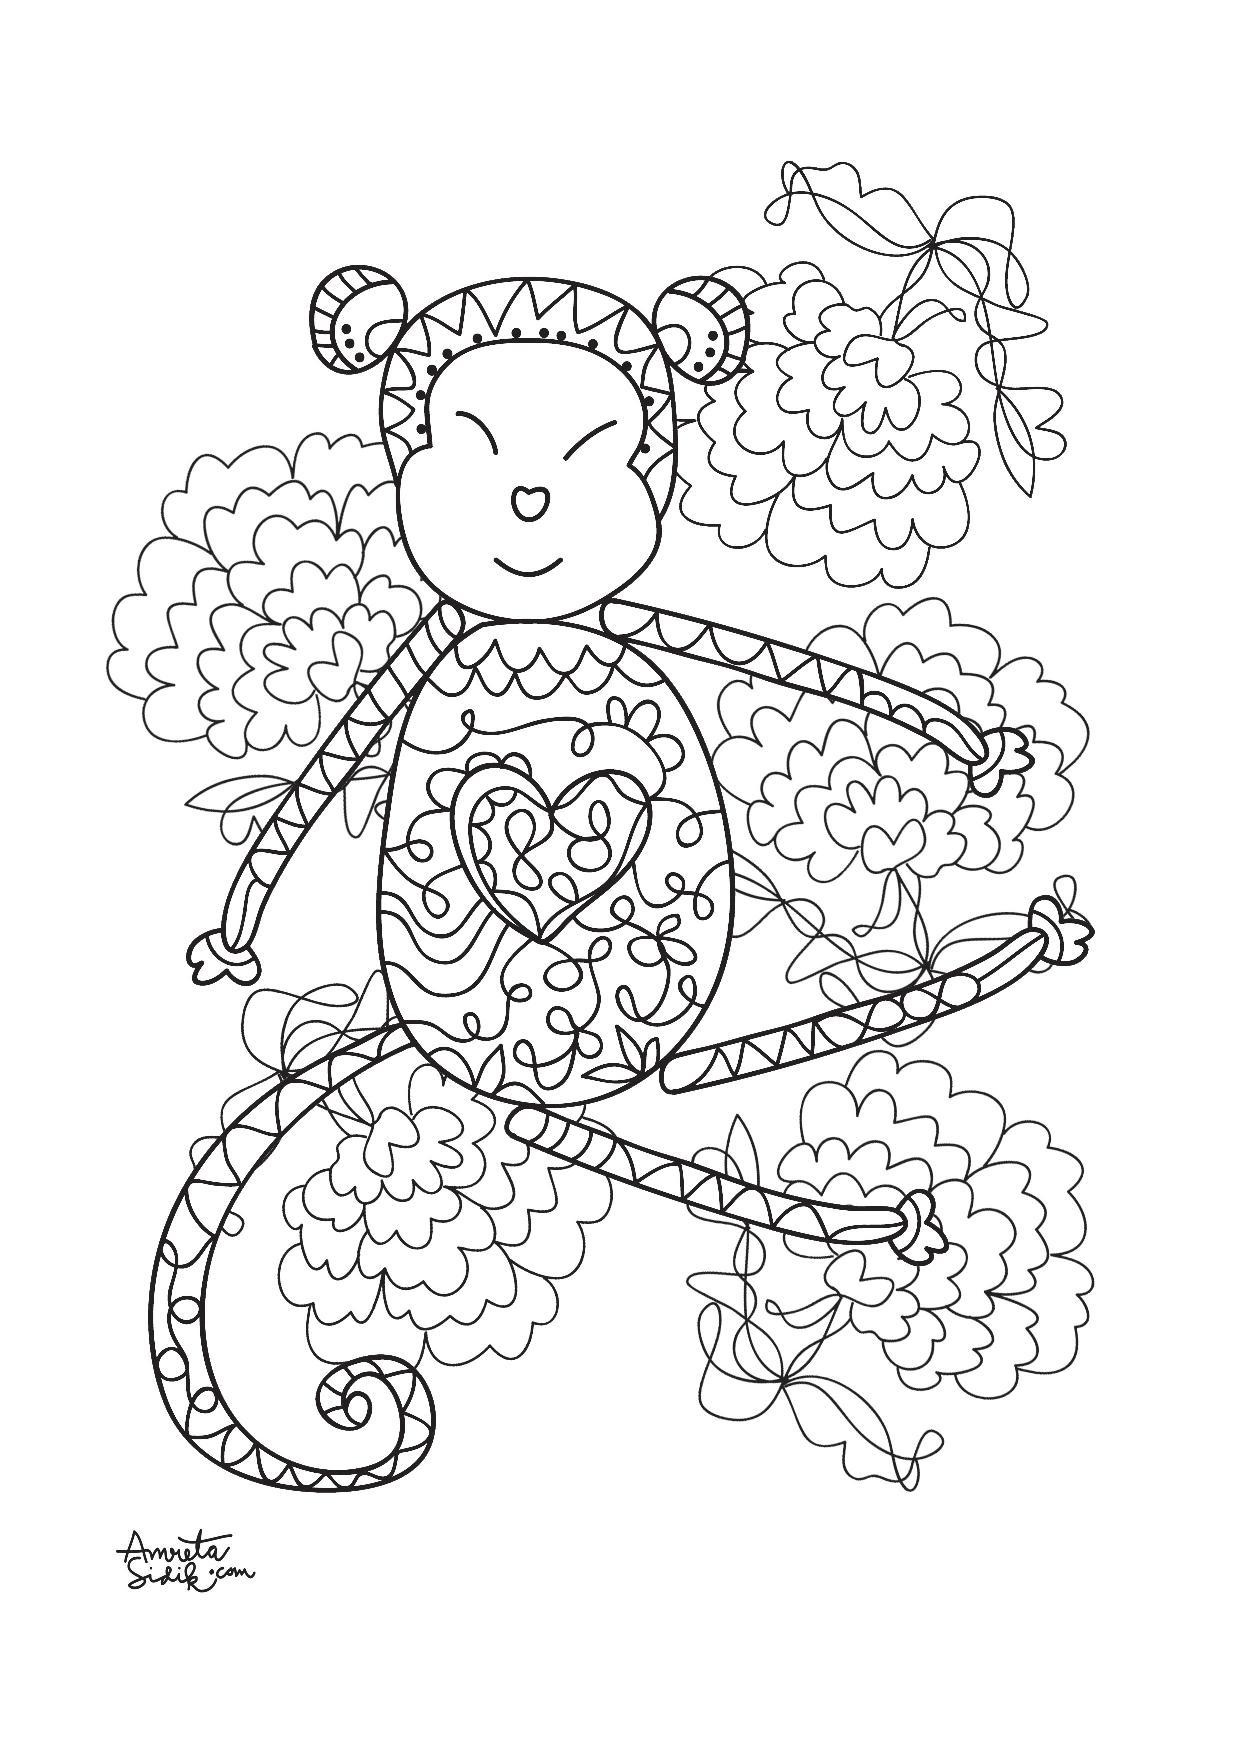 Year Of The Monkey 3 Anti Stress Adult Coloring Pages